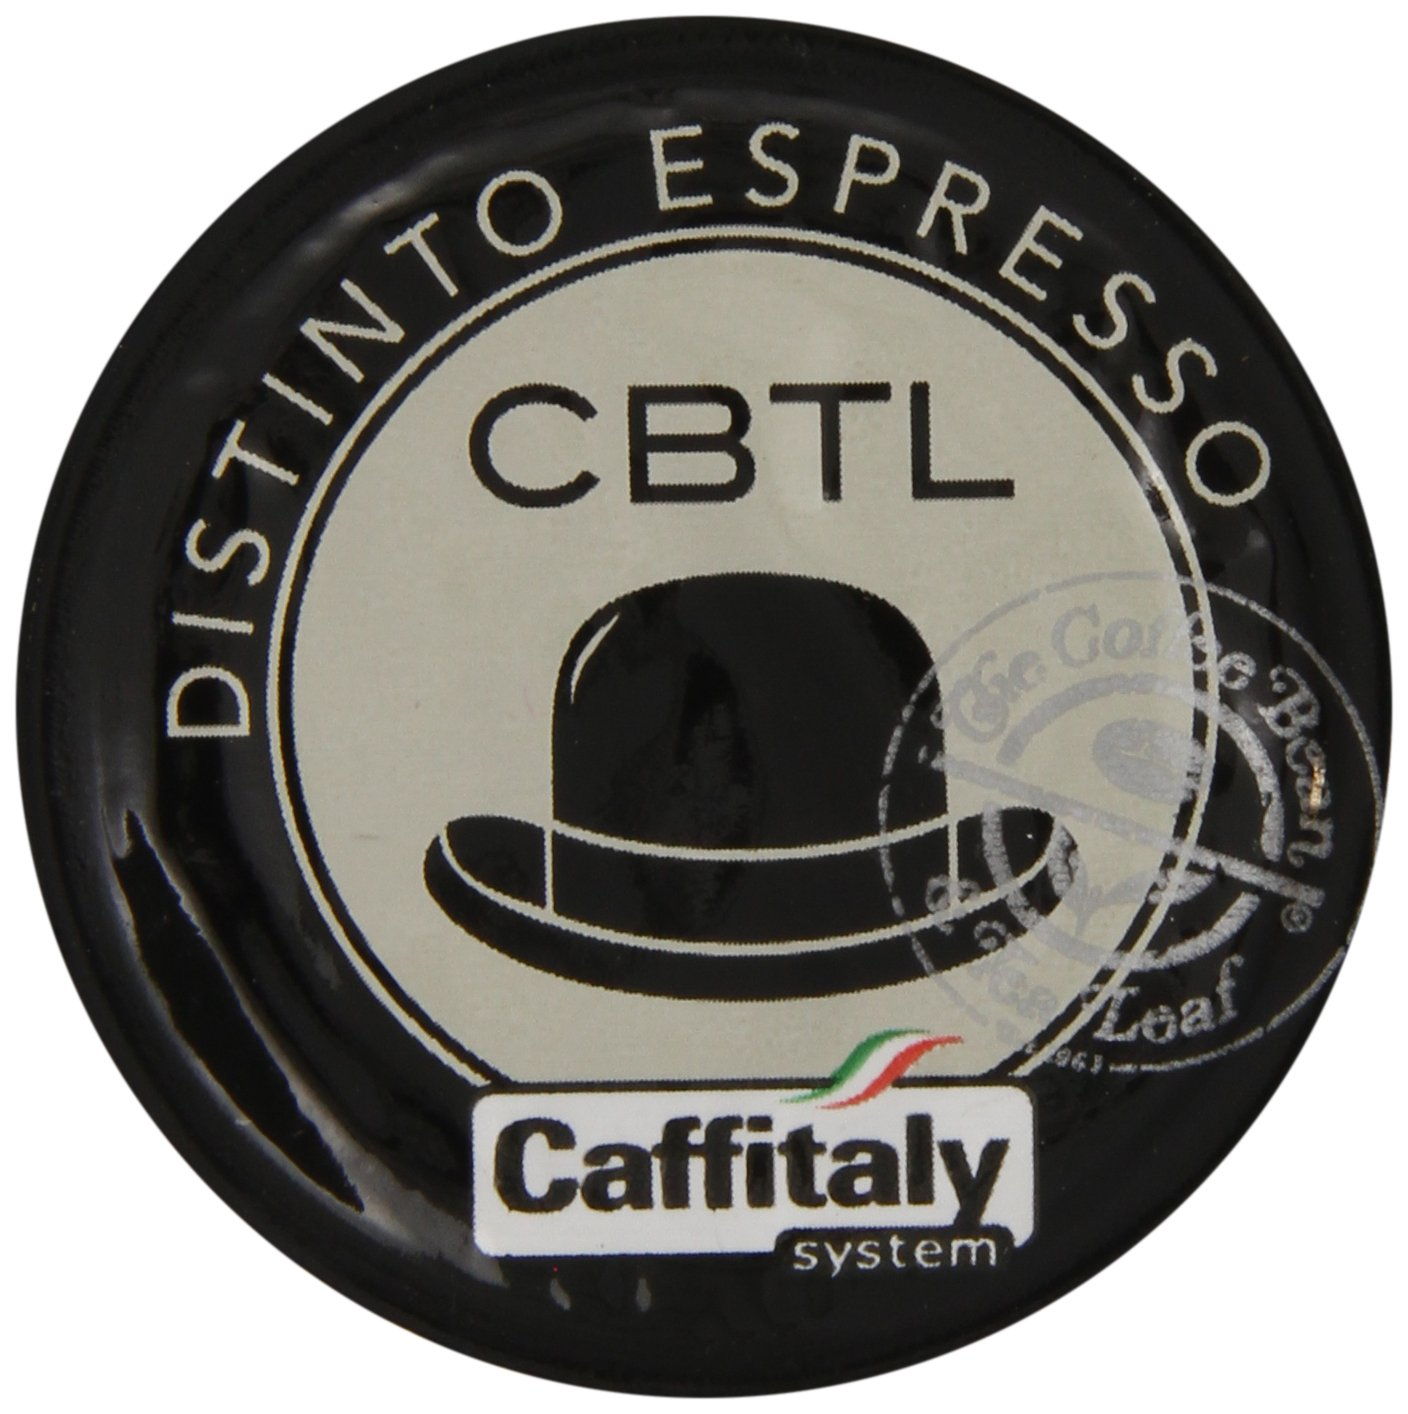 The Coffee Bean & Tea Leaf Cbtl Distinto Espresso Capsules, 10 Count (Pack of 8) by Coffee Bean & Tea Leaf